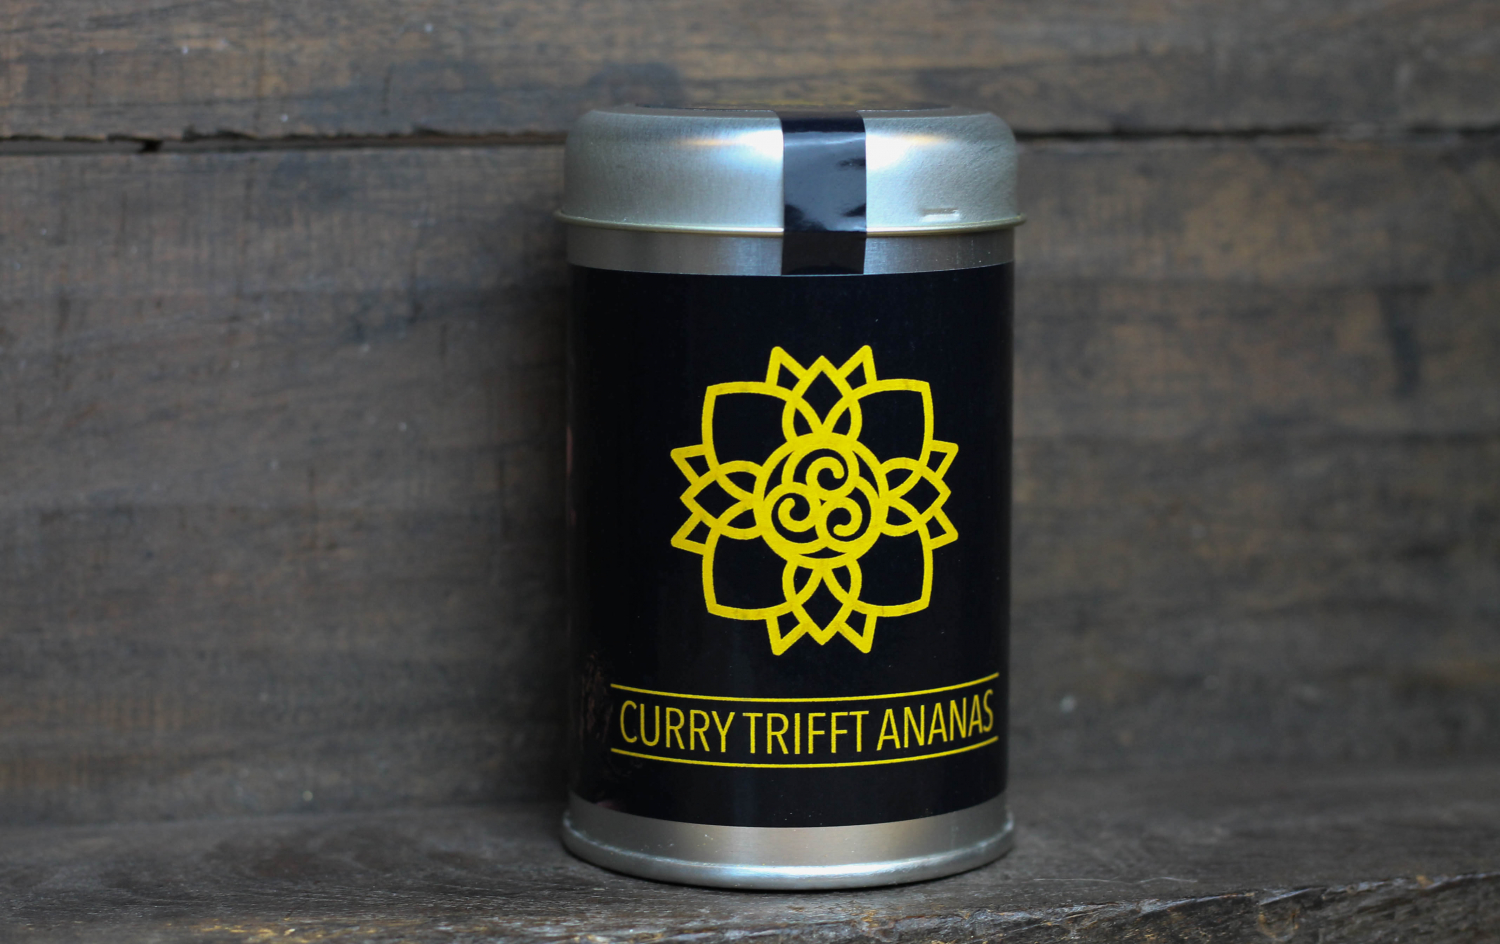 Soulsistakitchen - Curry trifft Ananas, 90g Streu95